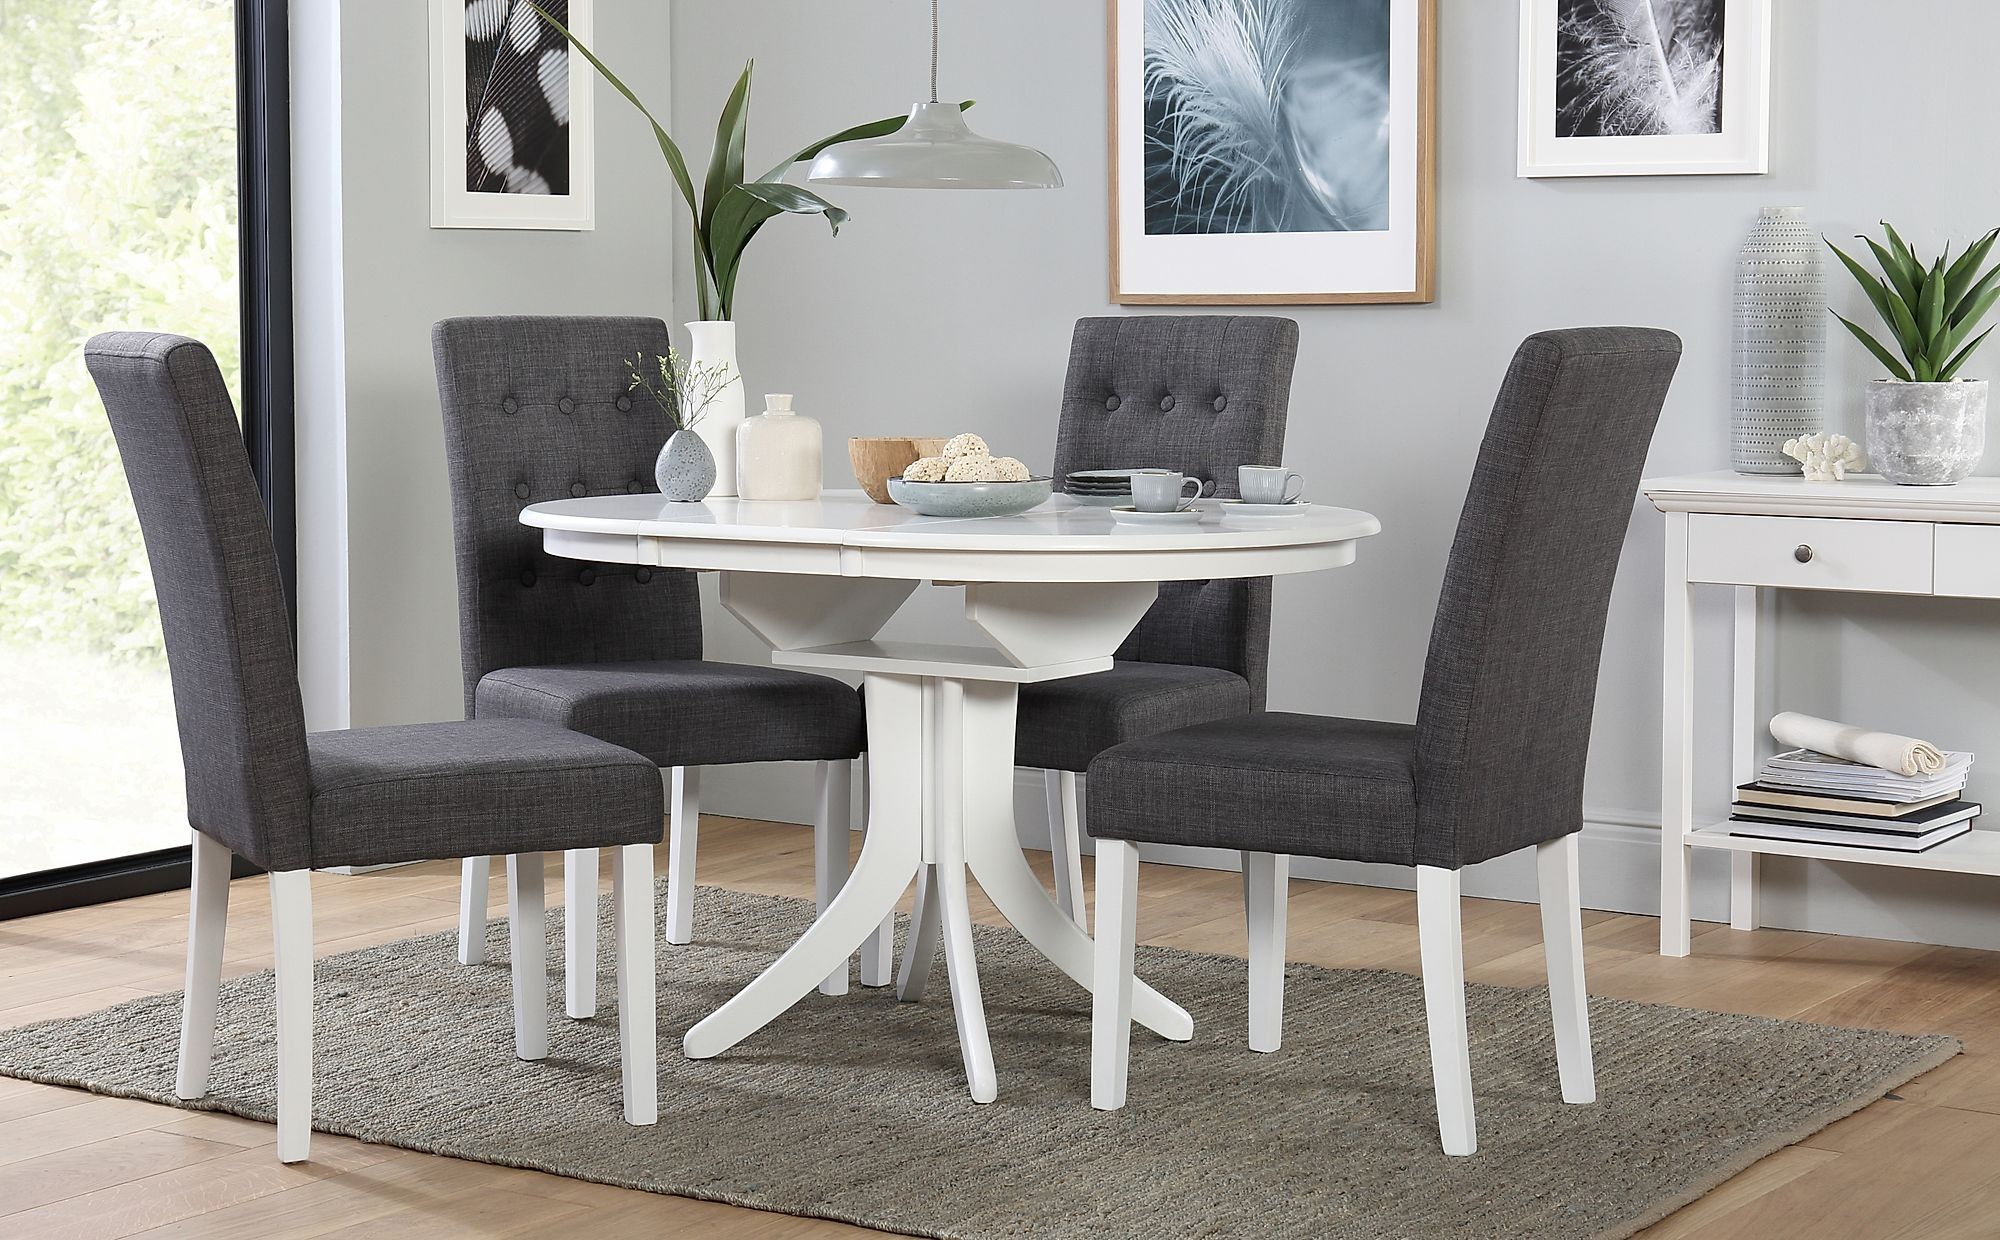 Stunning White Extending Dining Table Round Dining Room Dining Room Design Wood Dining Room Table